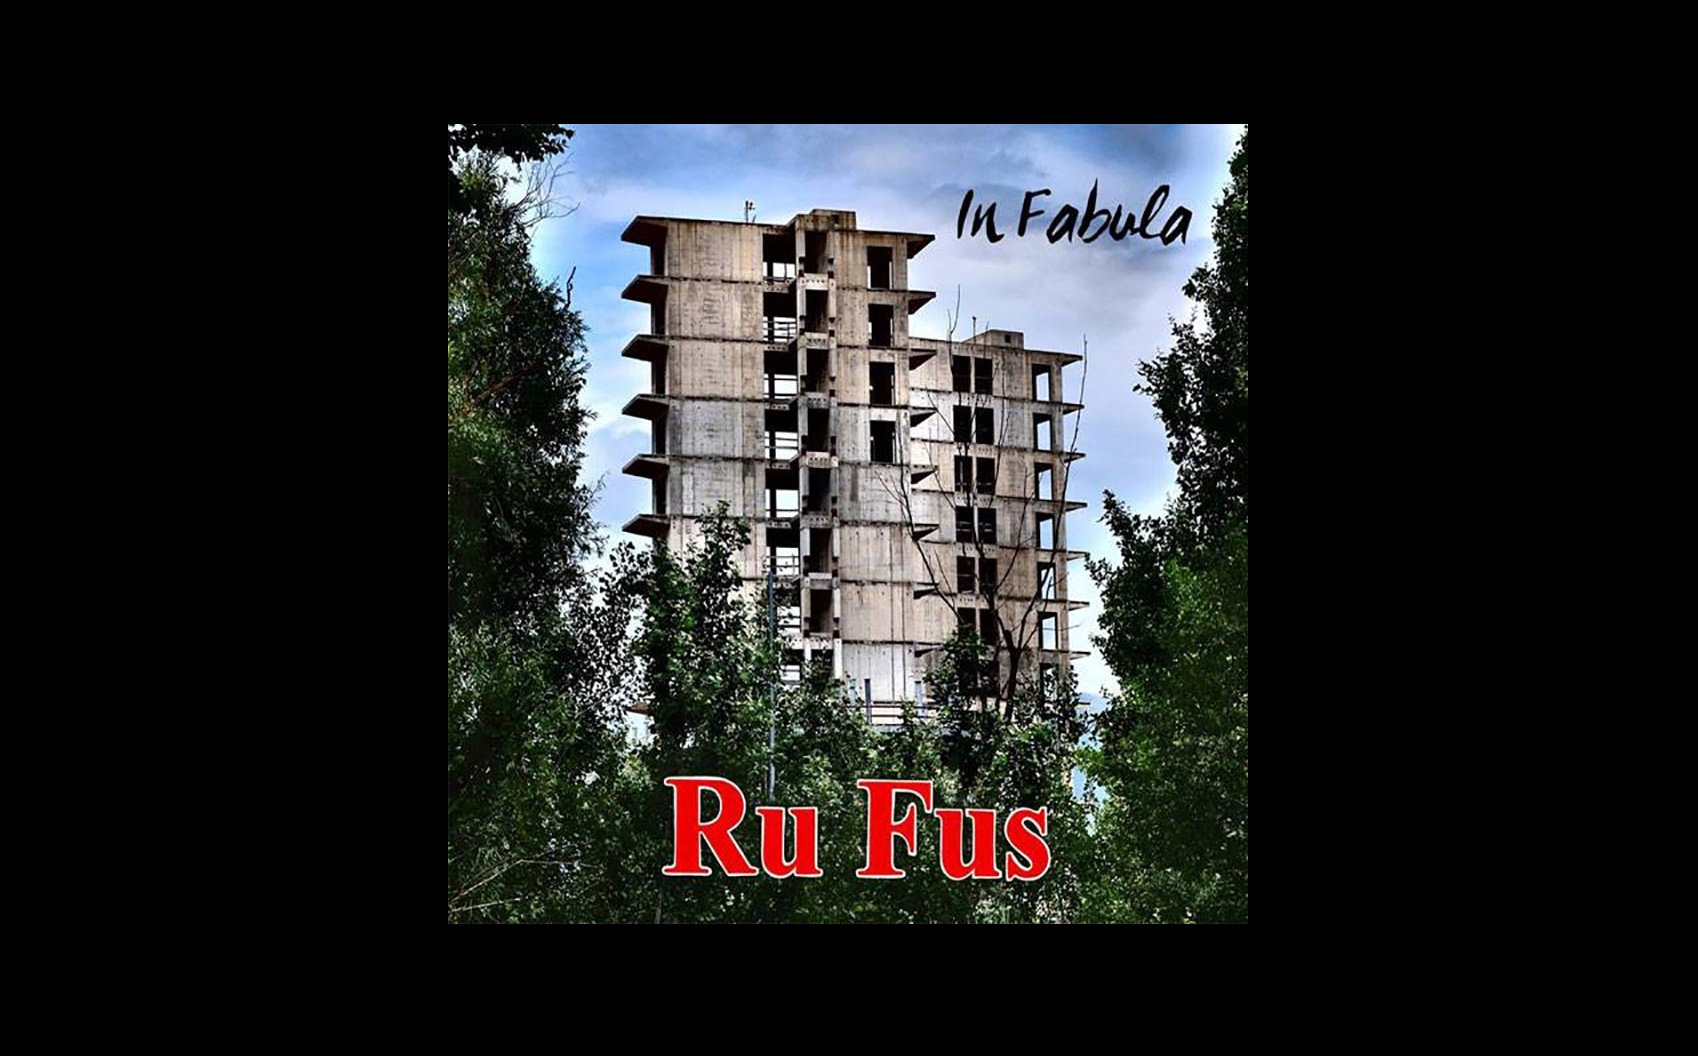 Ru Fus In Fabula